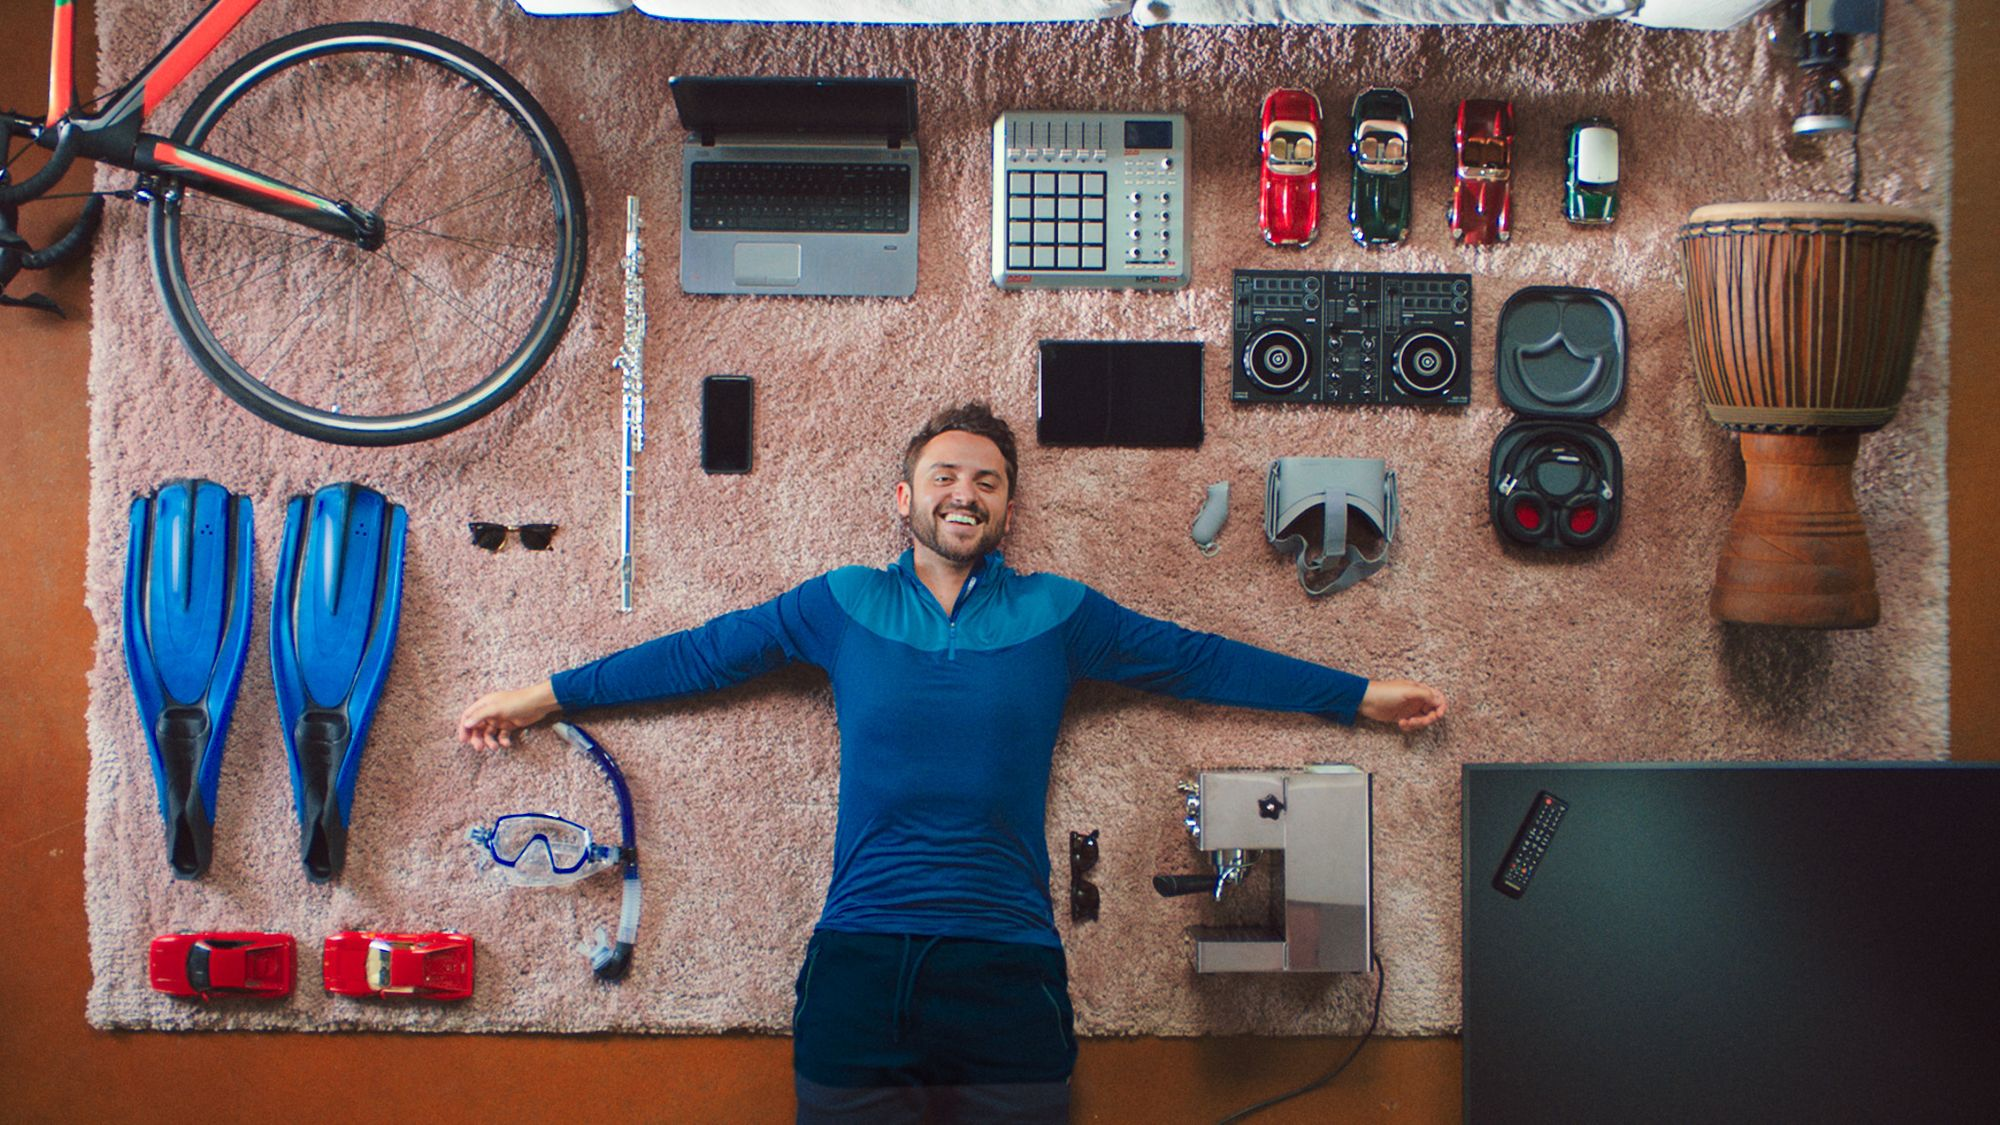 Tom-and-his-stuff-1